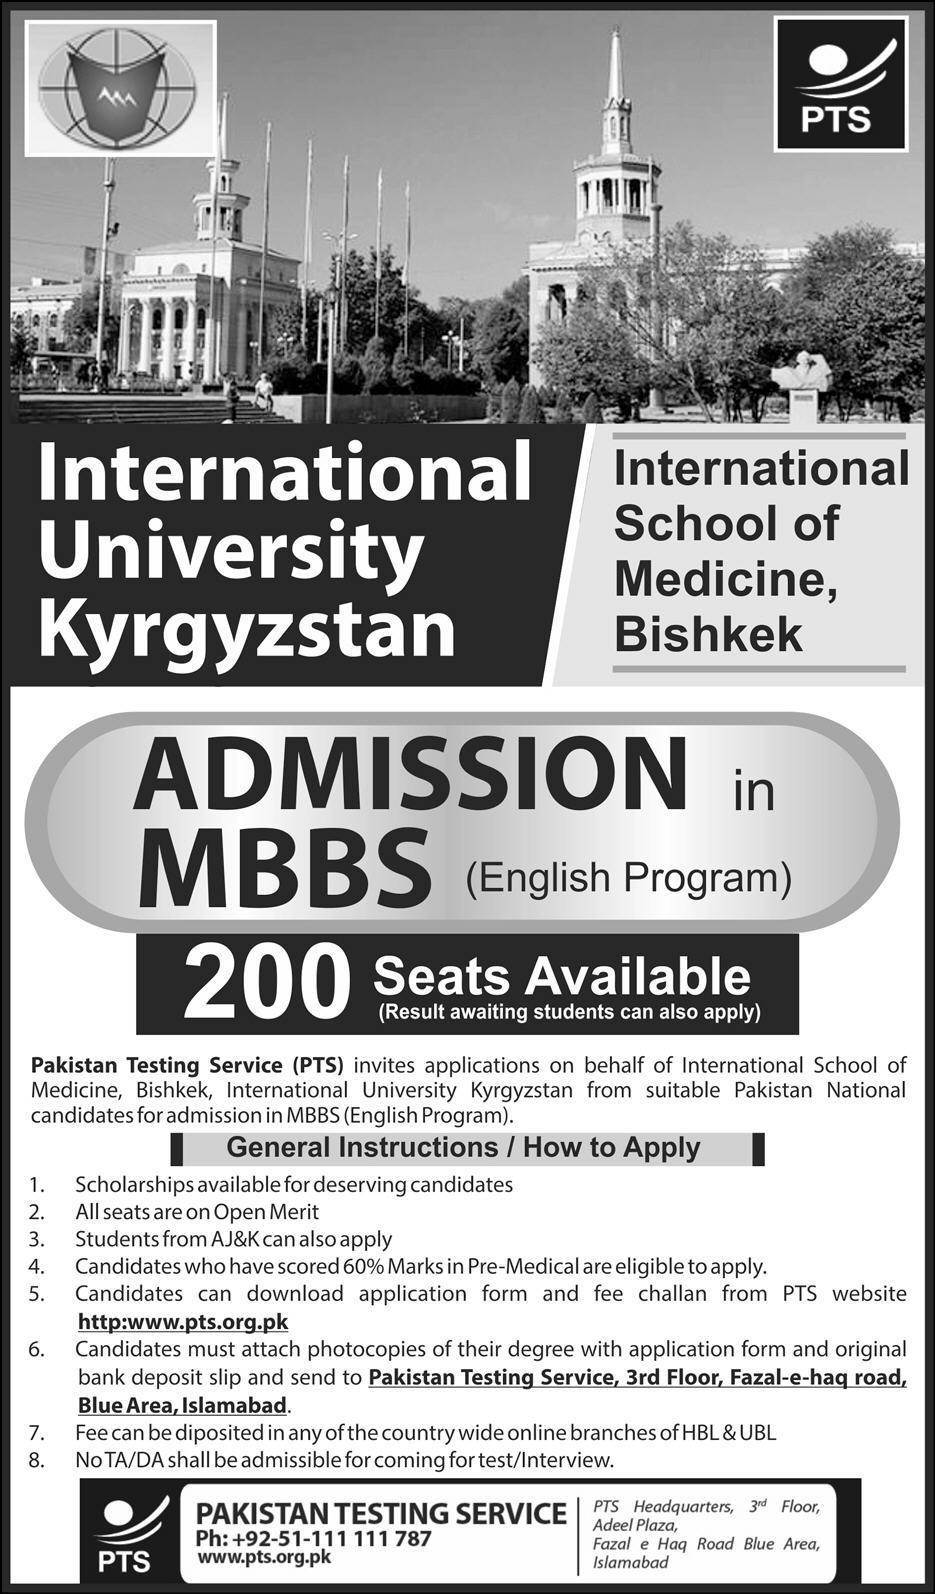 International University Kyrgyzstan MBBS Admission 2018, PTS Test